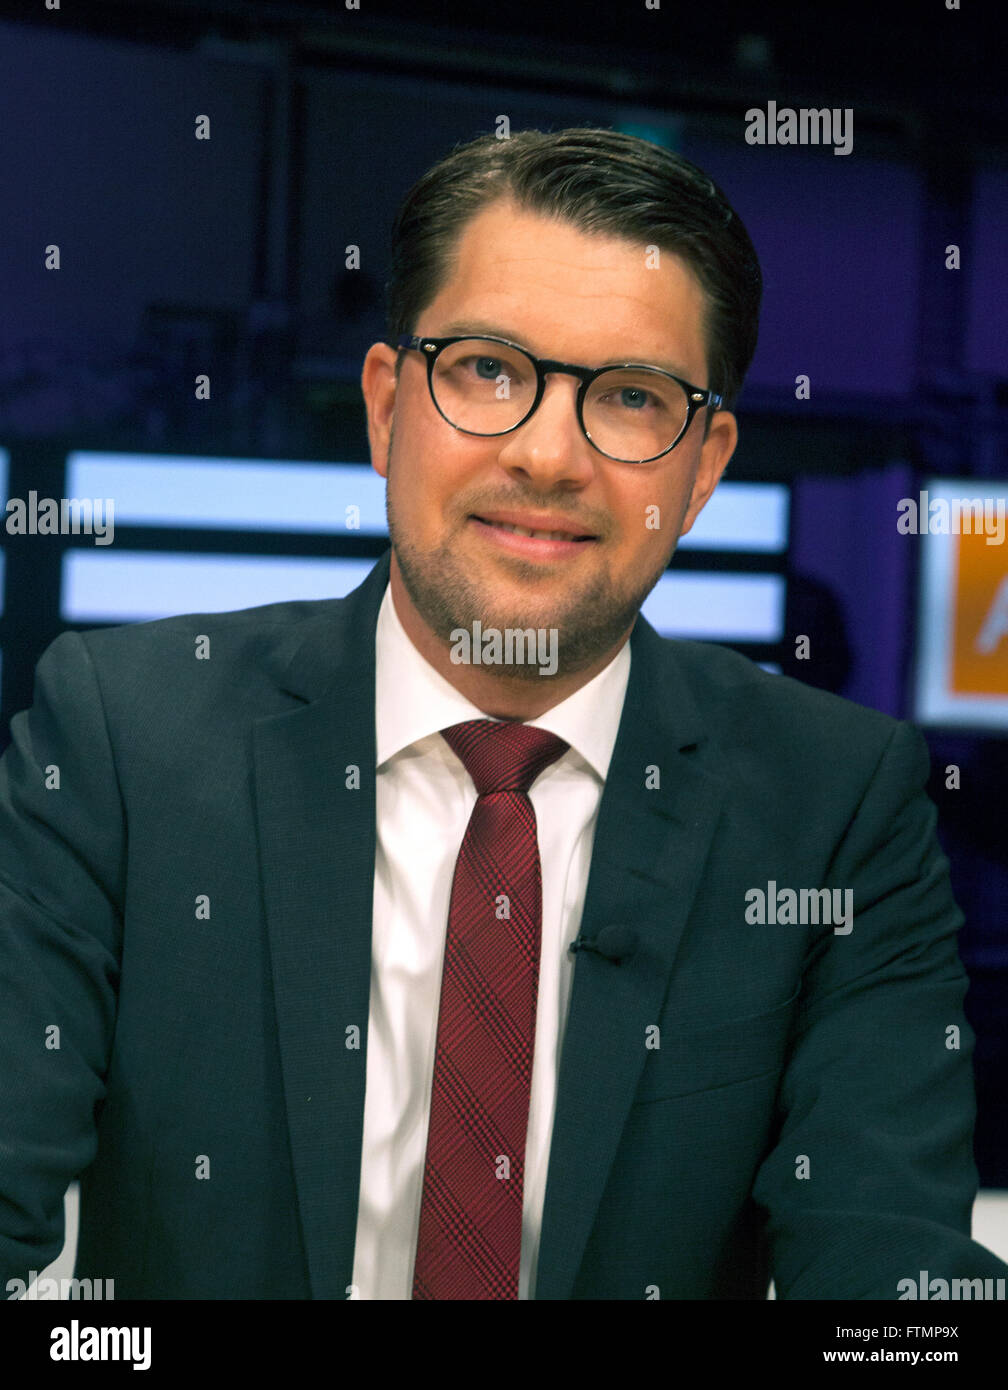 JIMMIE ÃKESSON leader of the Sweden Democrats - Stock Image